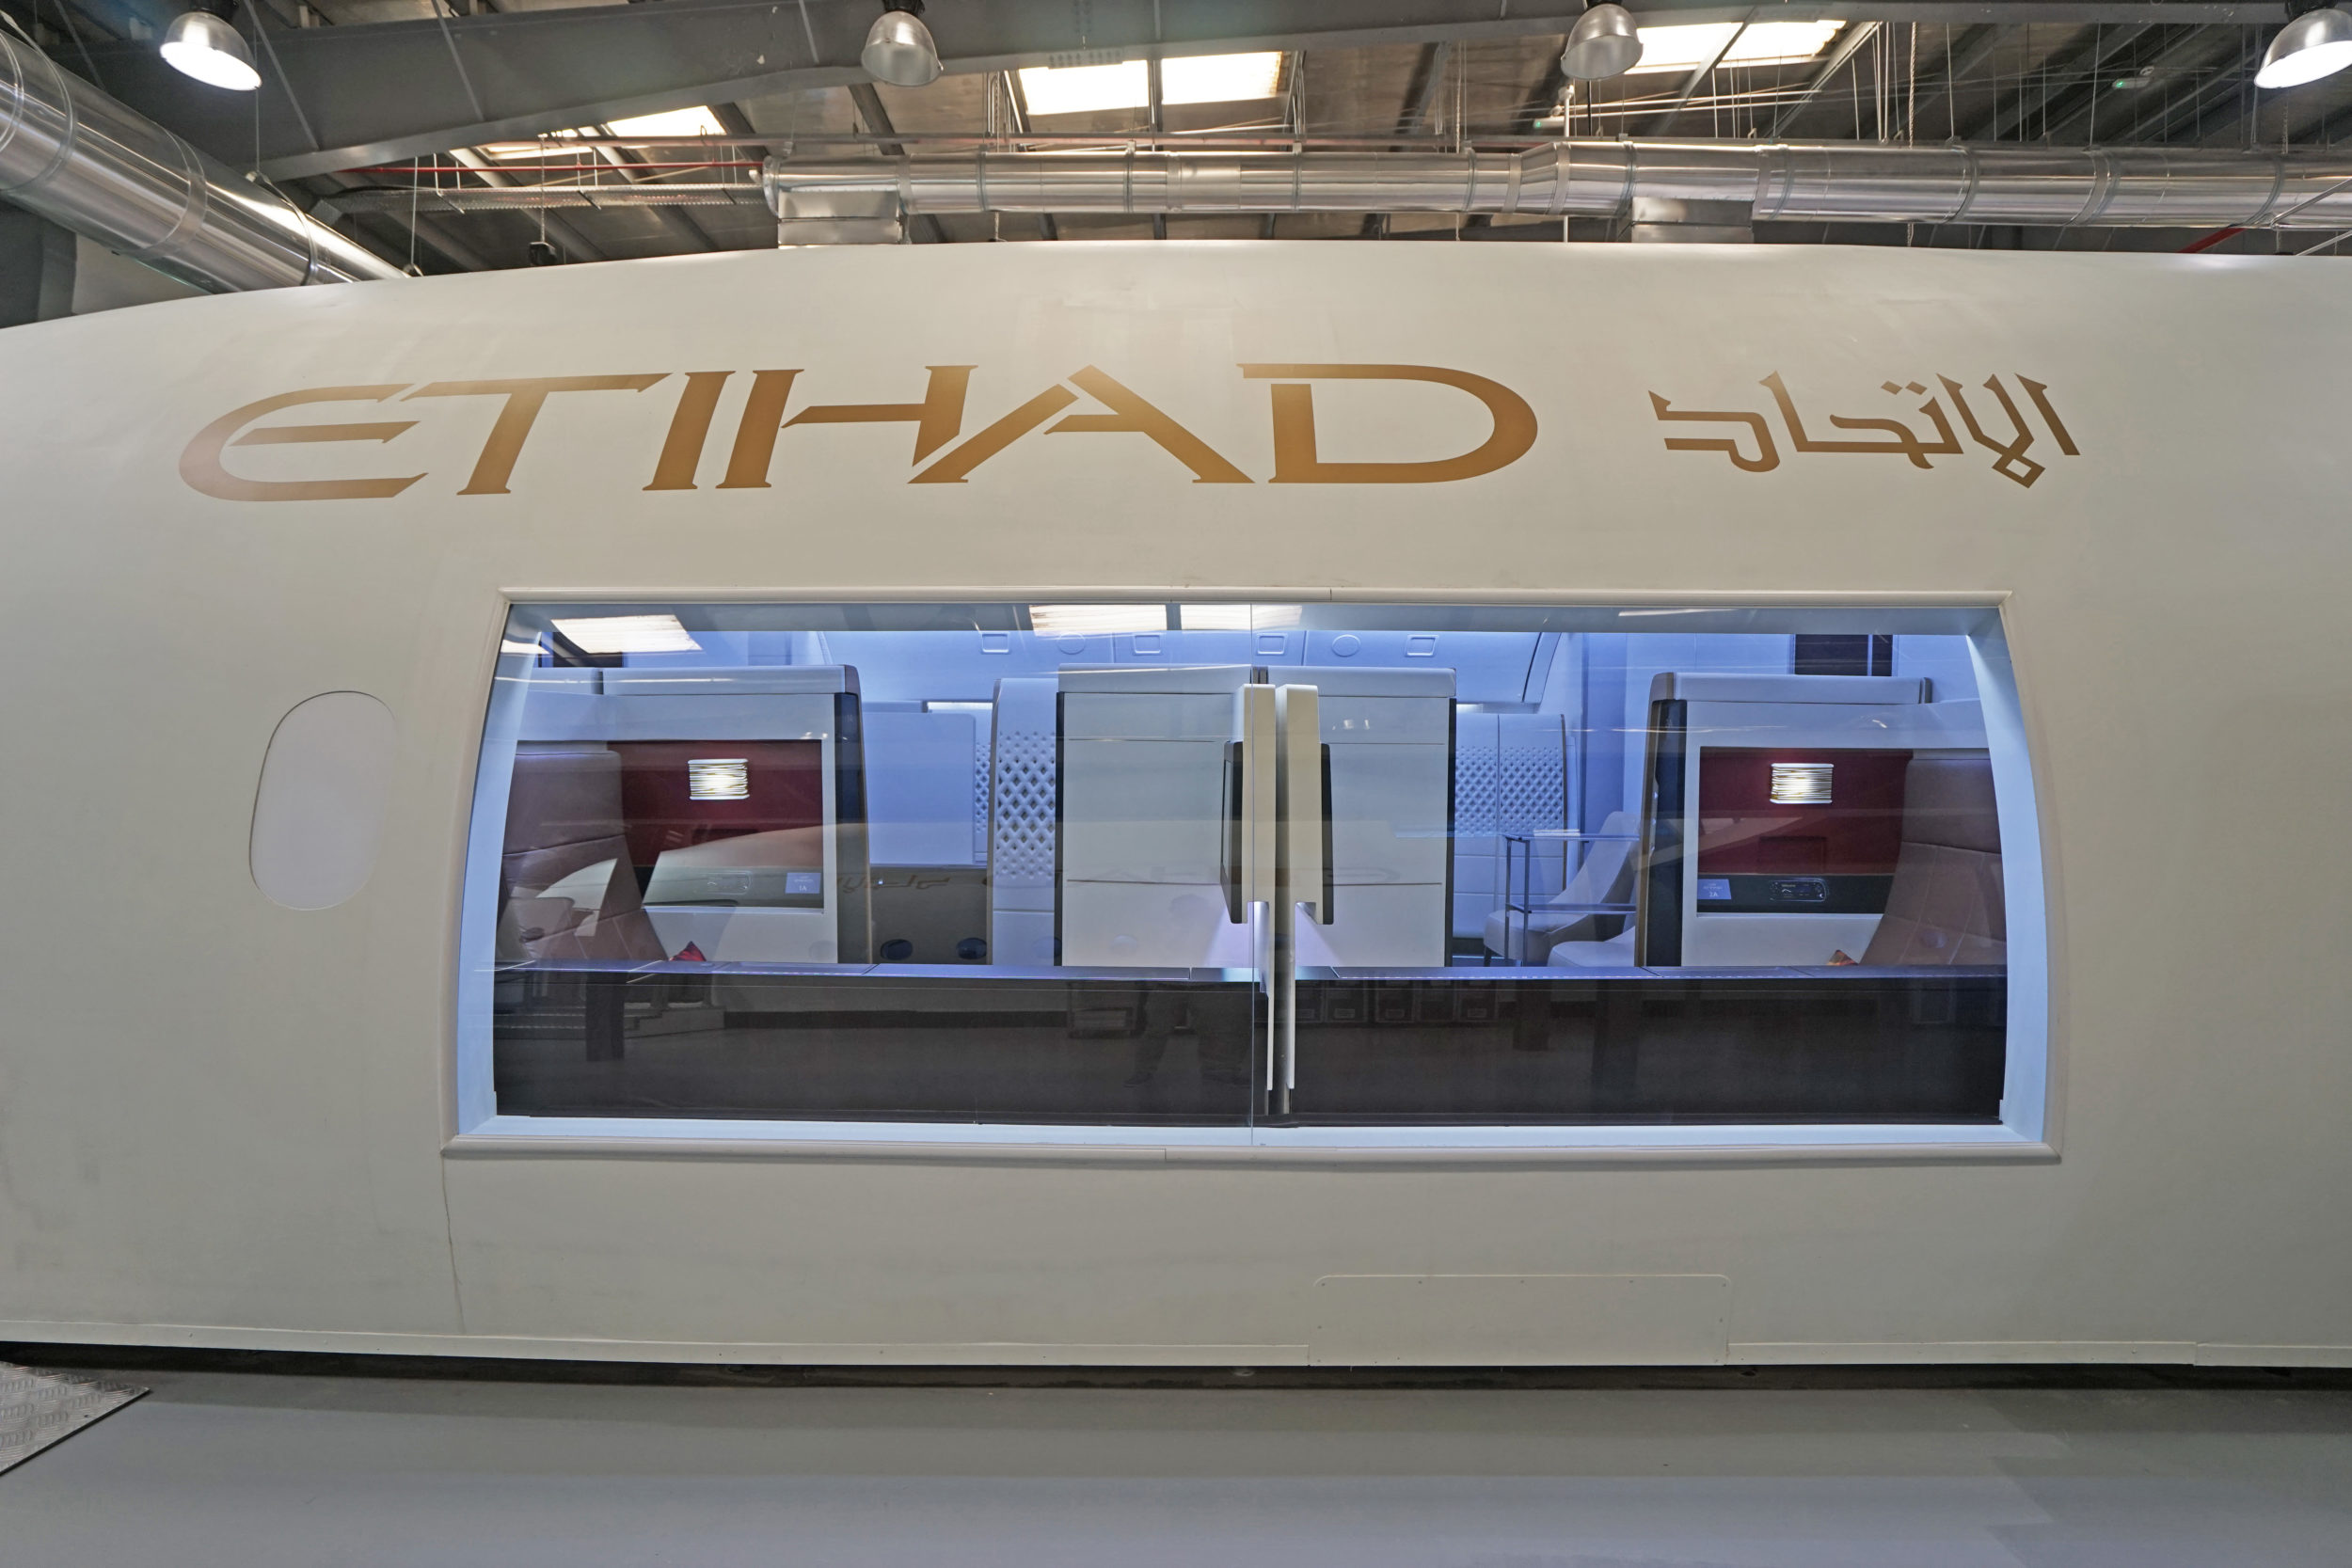 Etihad Airways Innovations Centre, A380 Replica